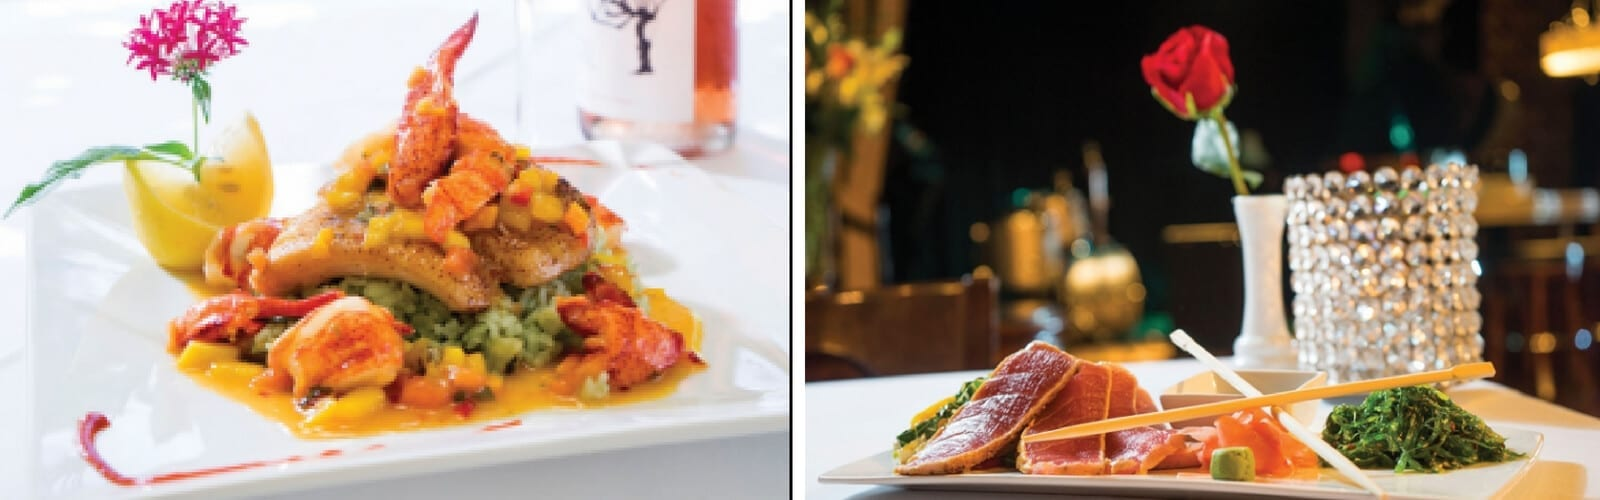 Naples Southwest Florida Dining Guide Food Options